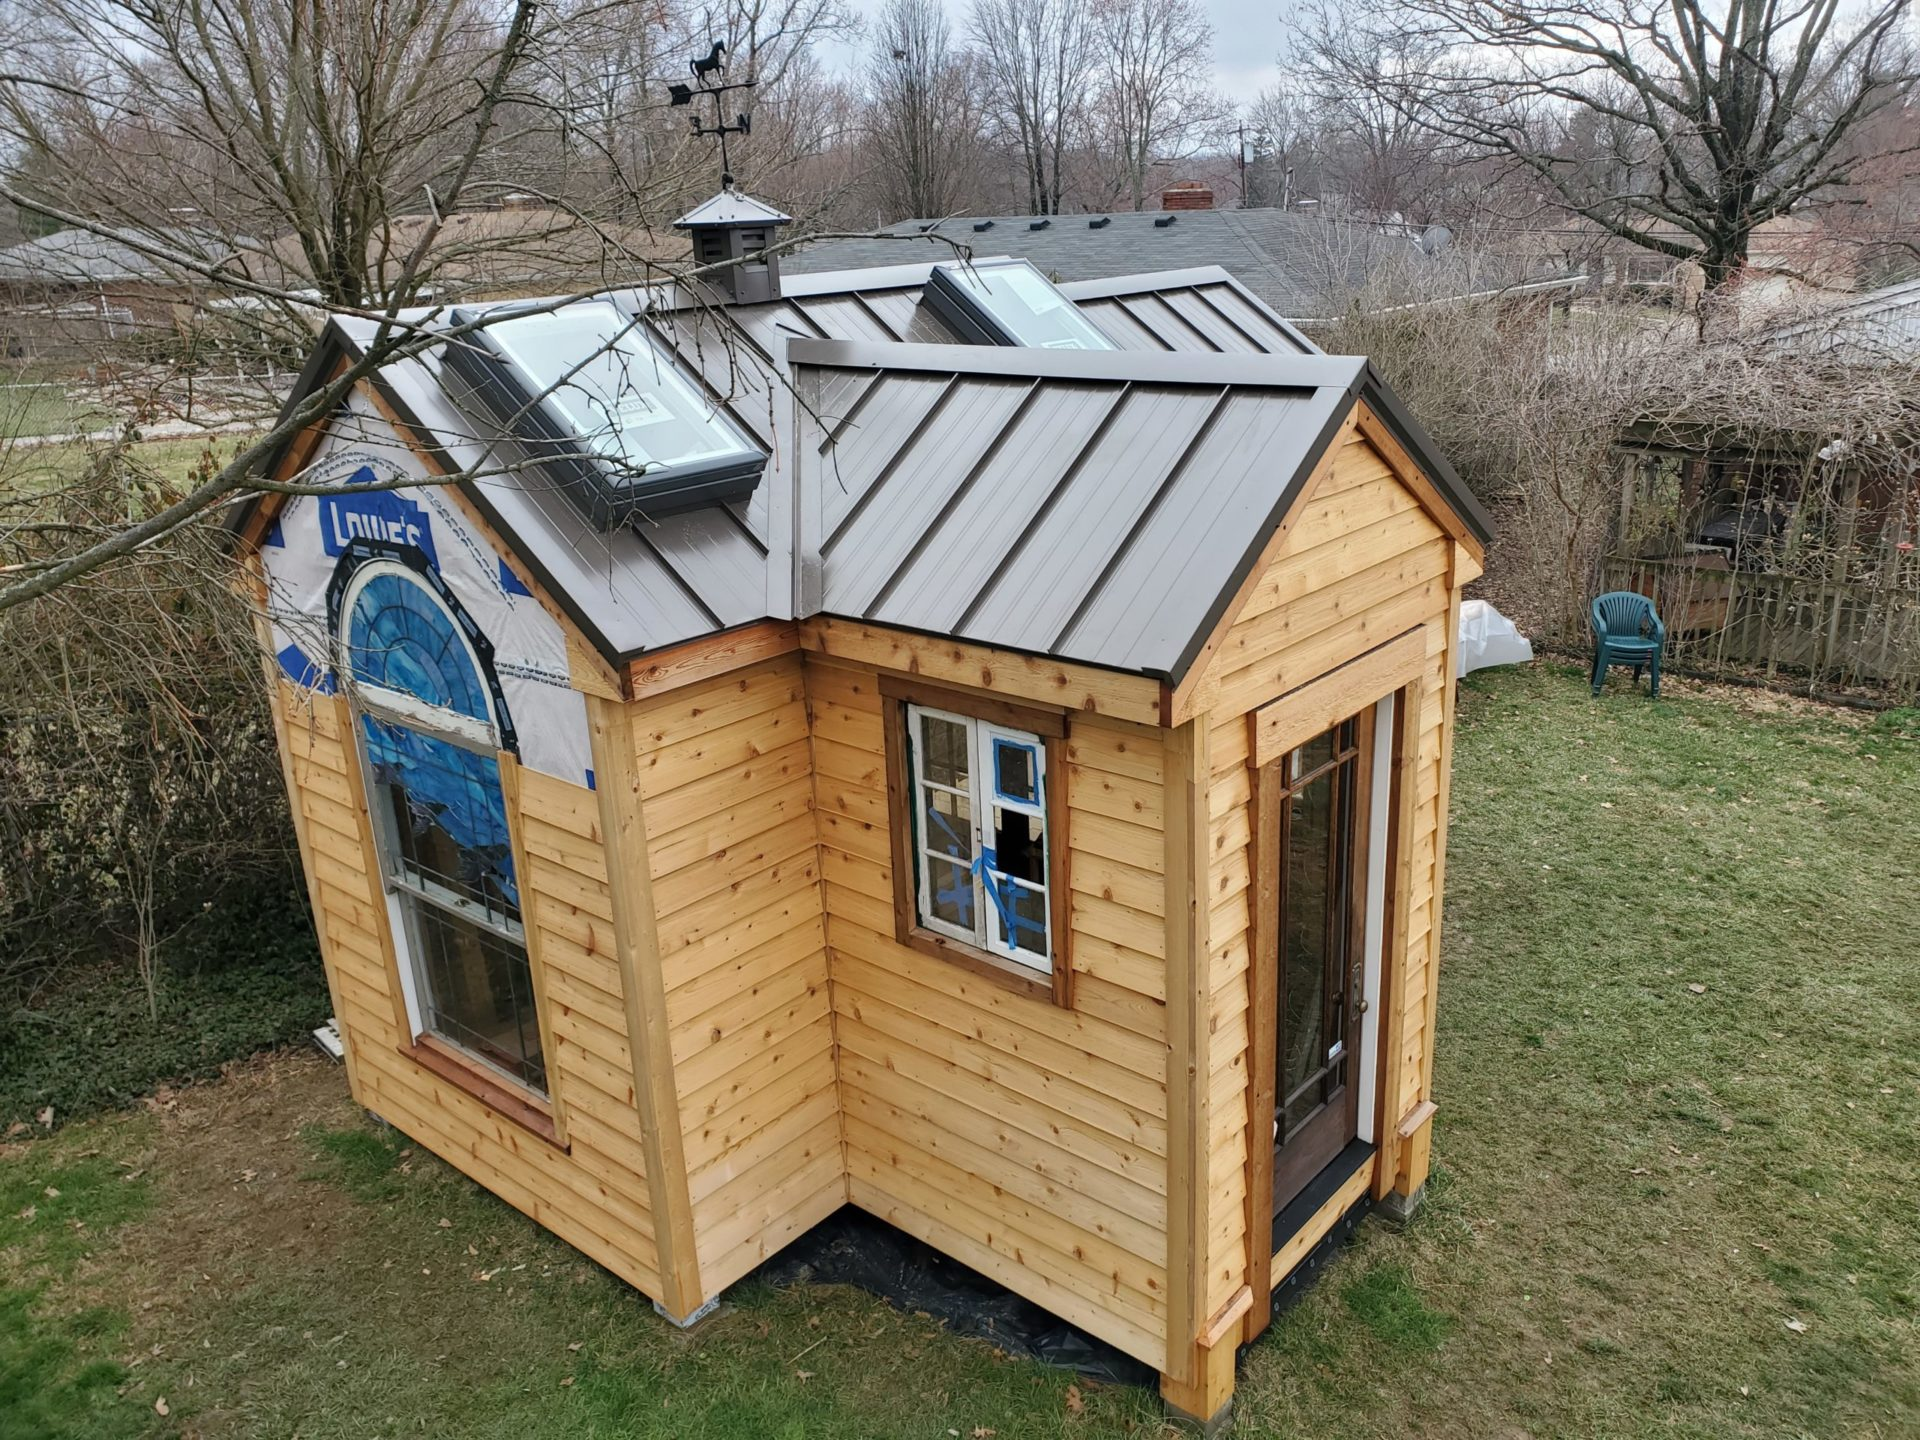 Top view of new metal restoration on shed